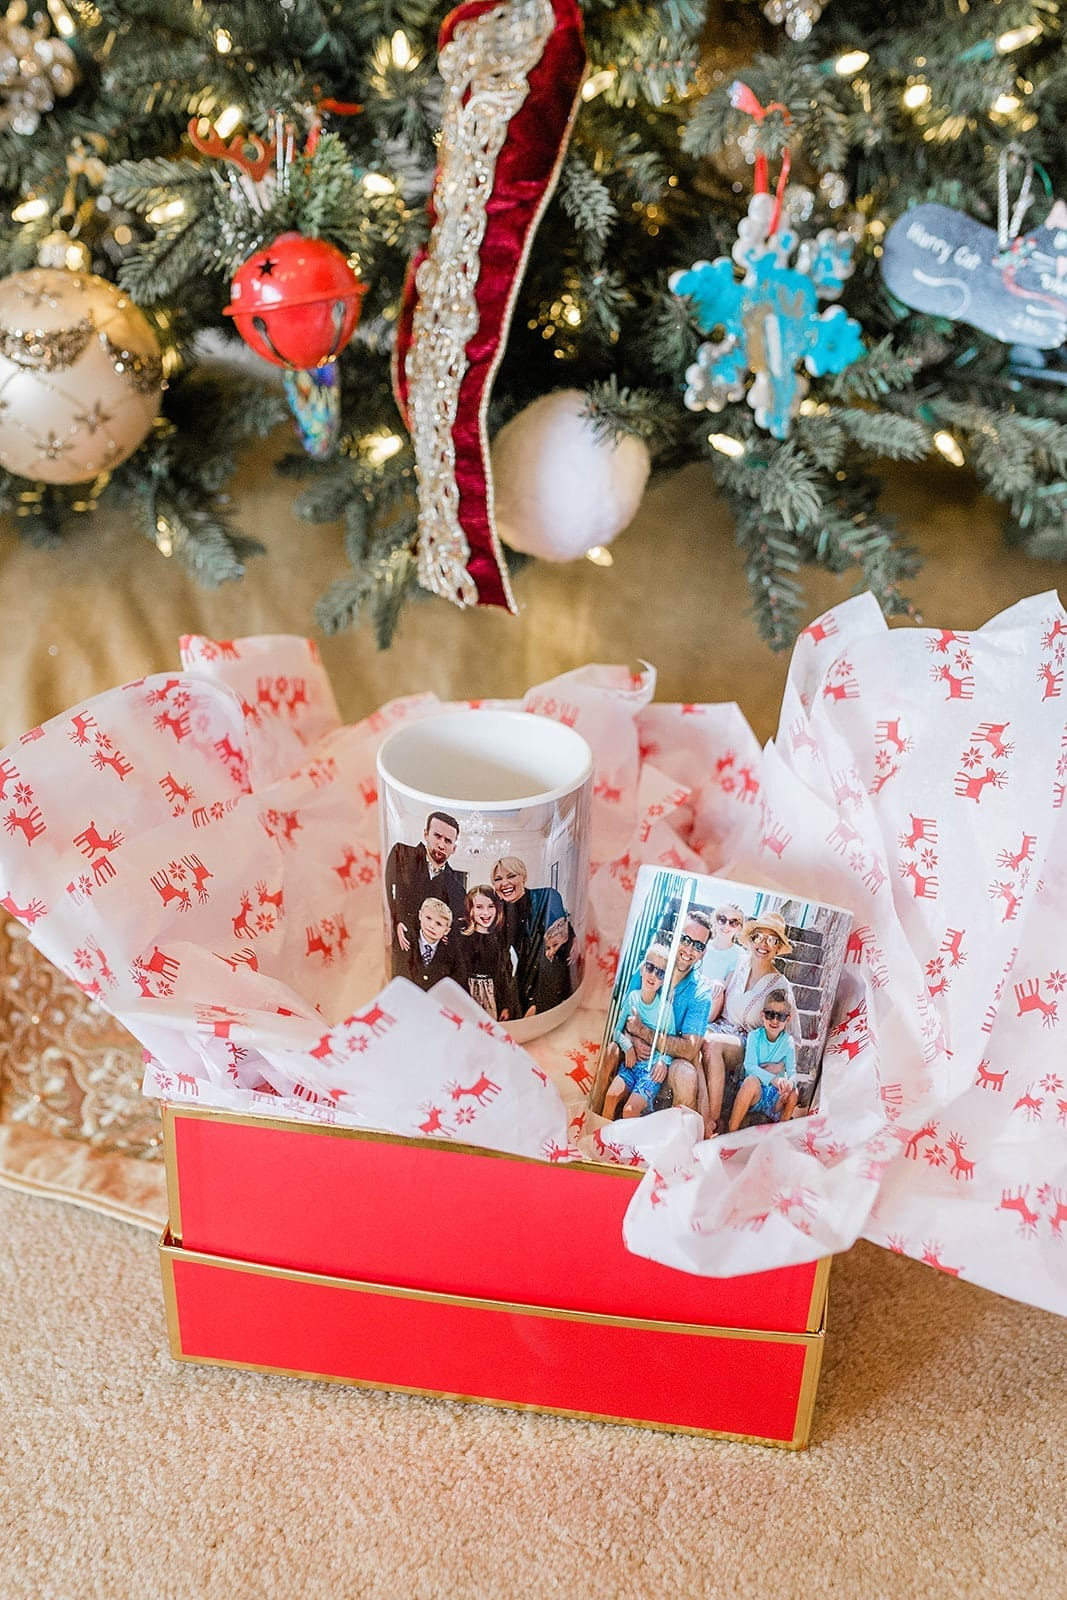 Kodak Moments App for easy gift ideas. Coffee mugs with pictures of the year help you enjoy your photos instead of just having them on your computer!